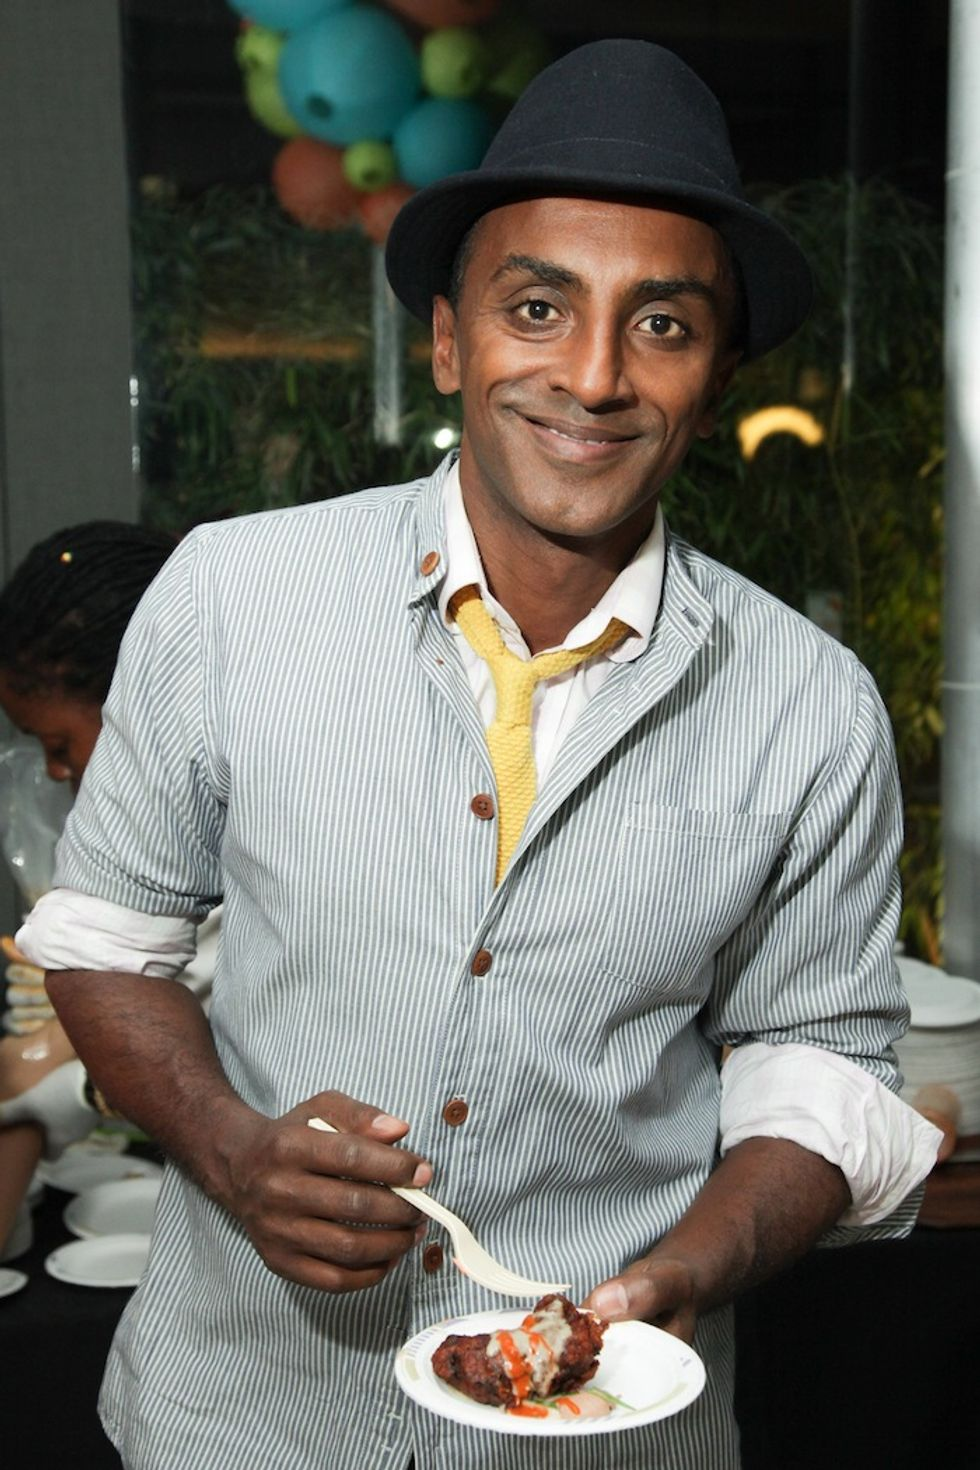 Marcus Samuelsson Reveals His All-Time Favorite Harlem Fried Chicken Joint